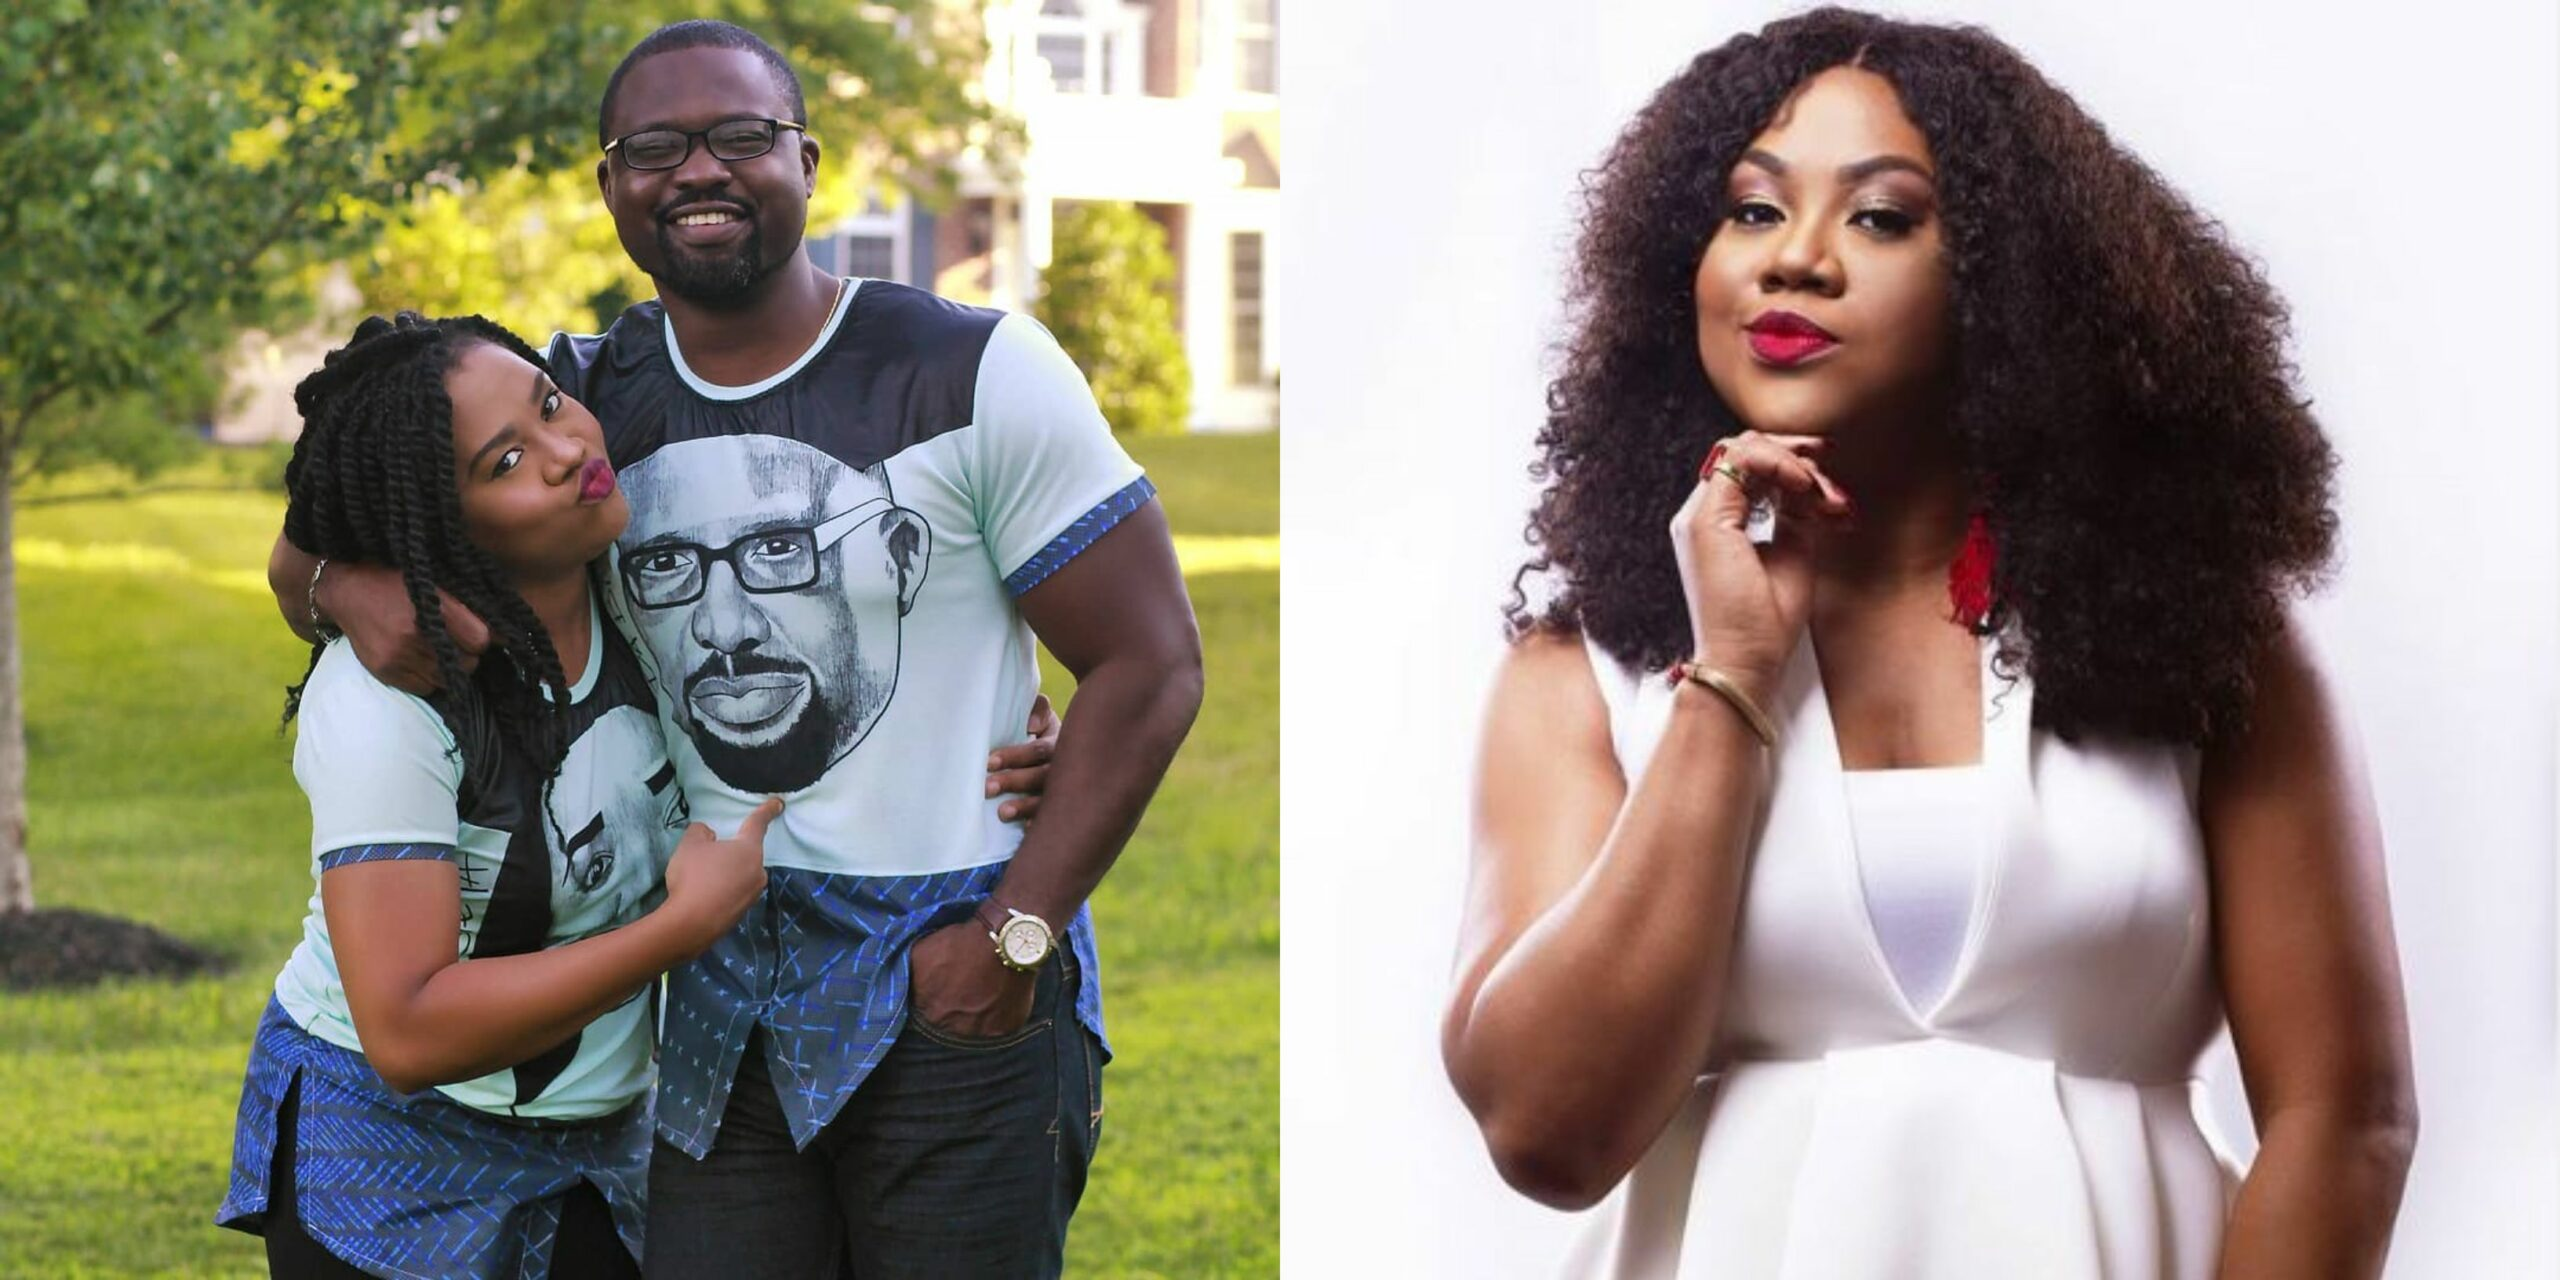 'With you, my life is blessed' – Daniel Ademinokan celebrates wife, Stella Damasus as she clocks 42